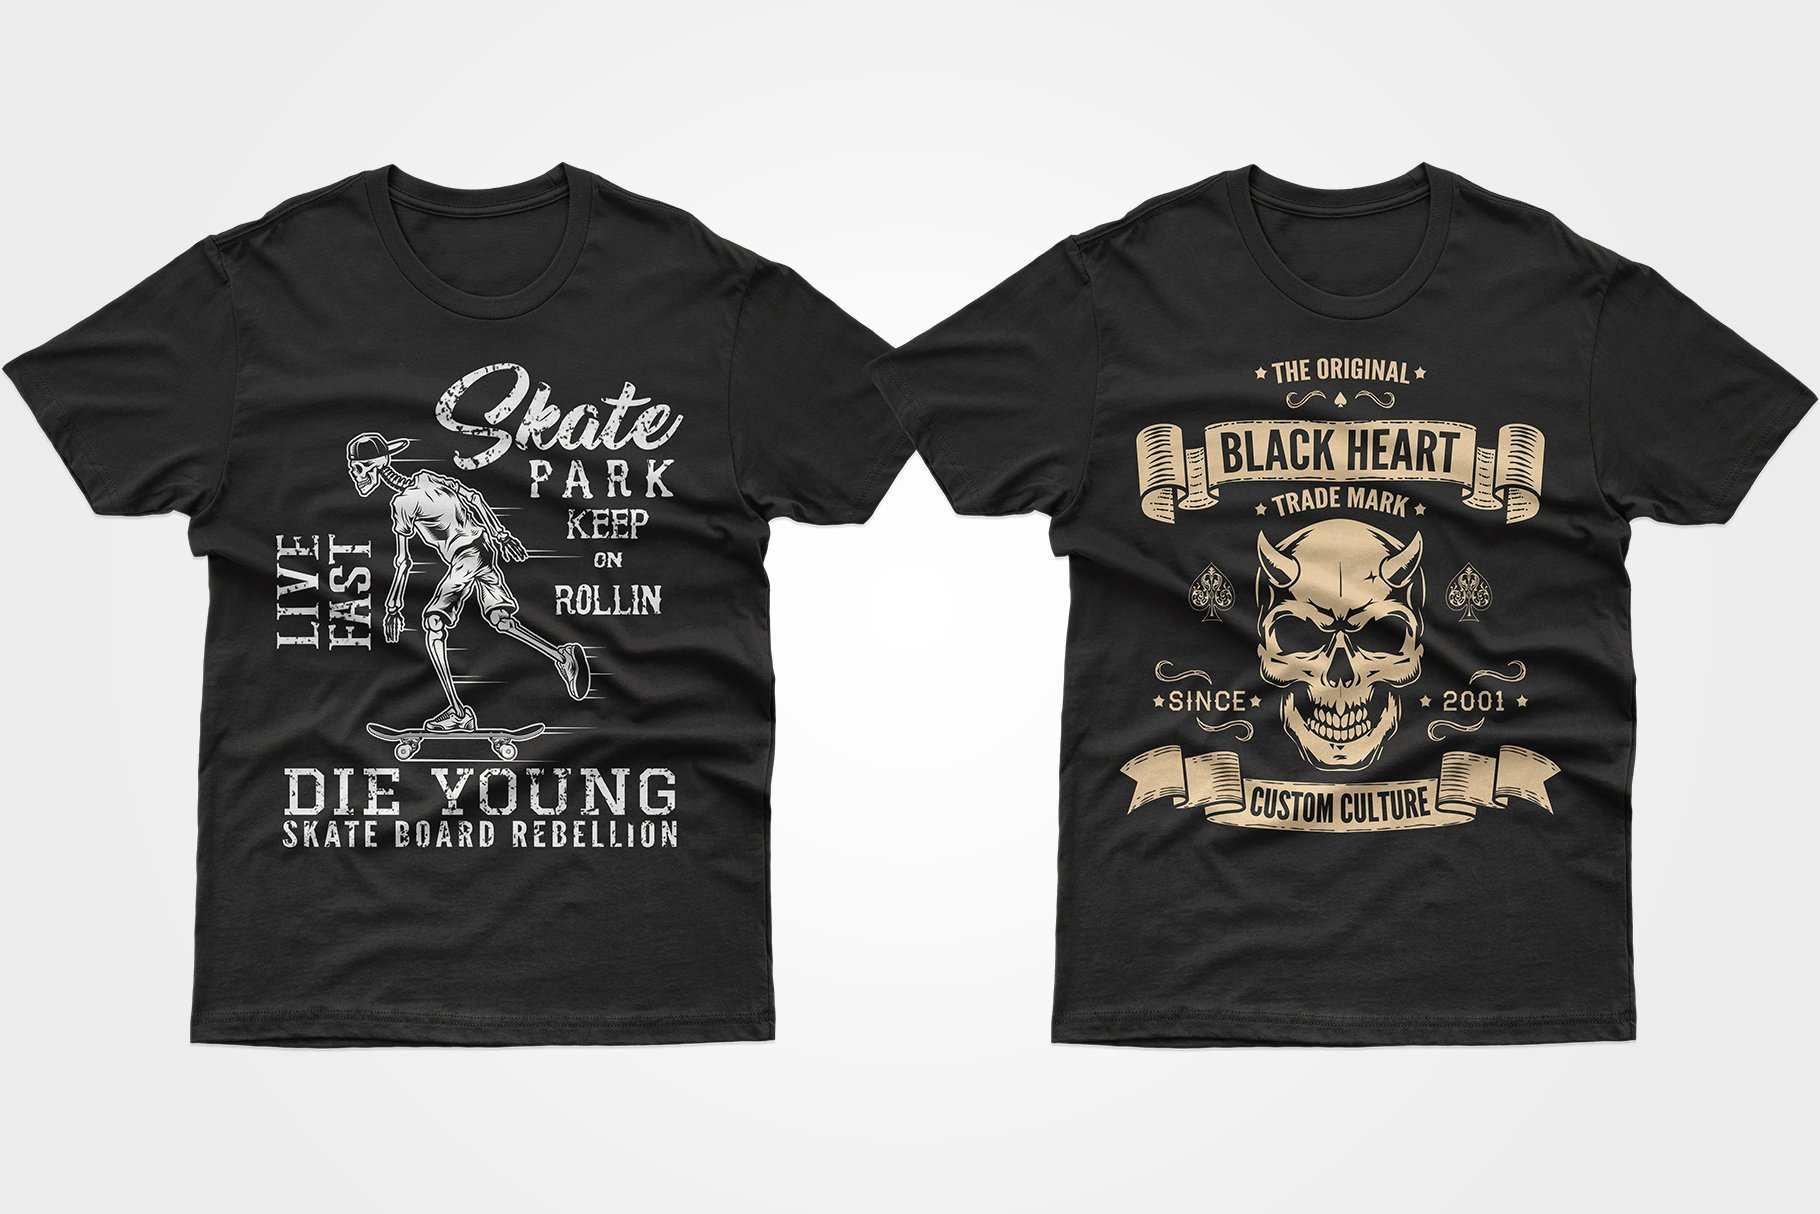 Two black T-shirts - one with a skeleton riding a skateboard, the other with a skull with horns.